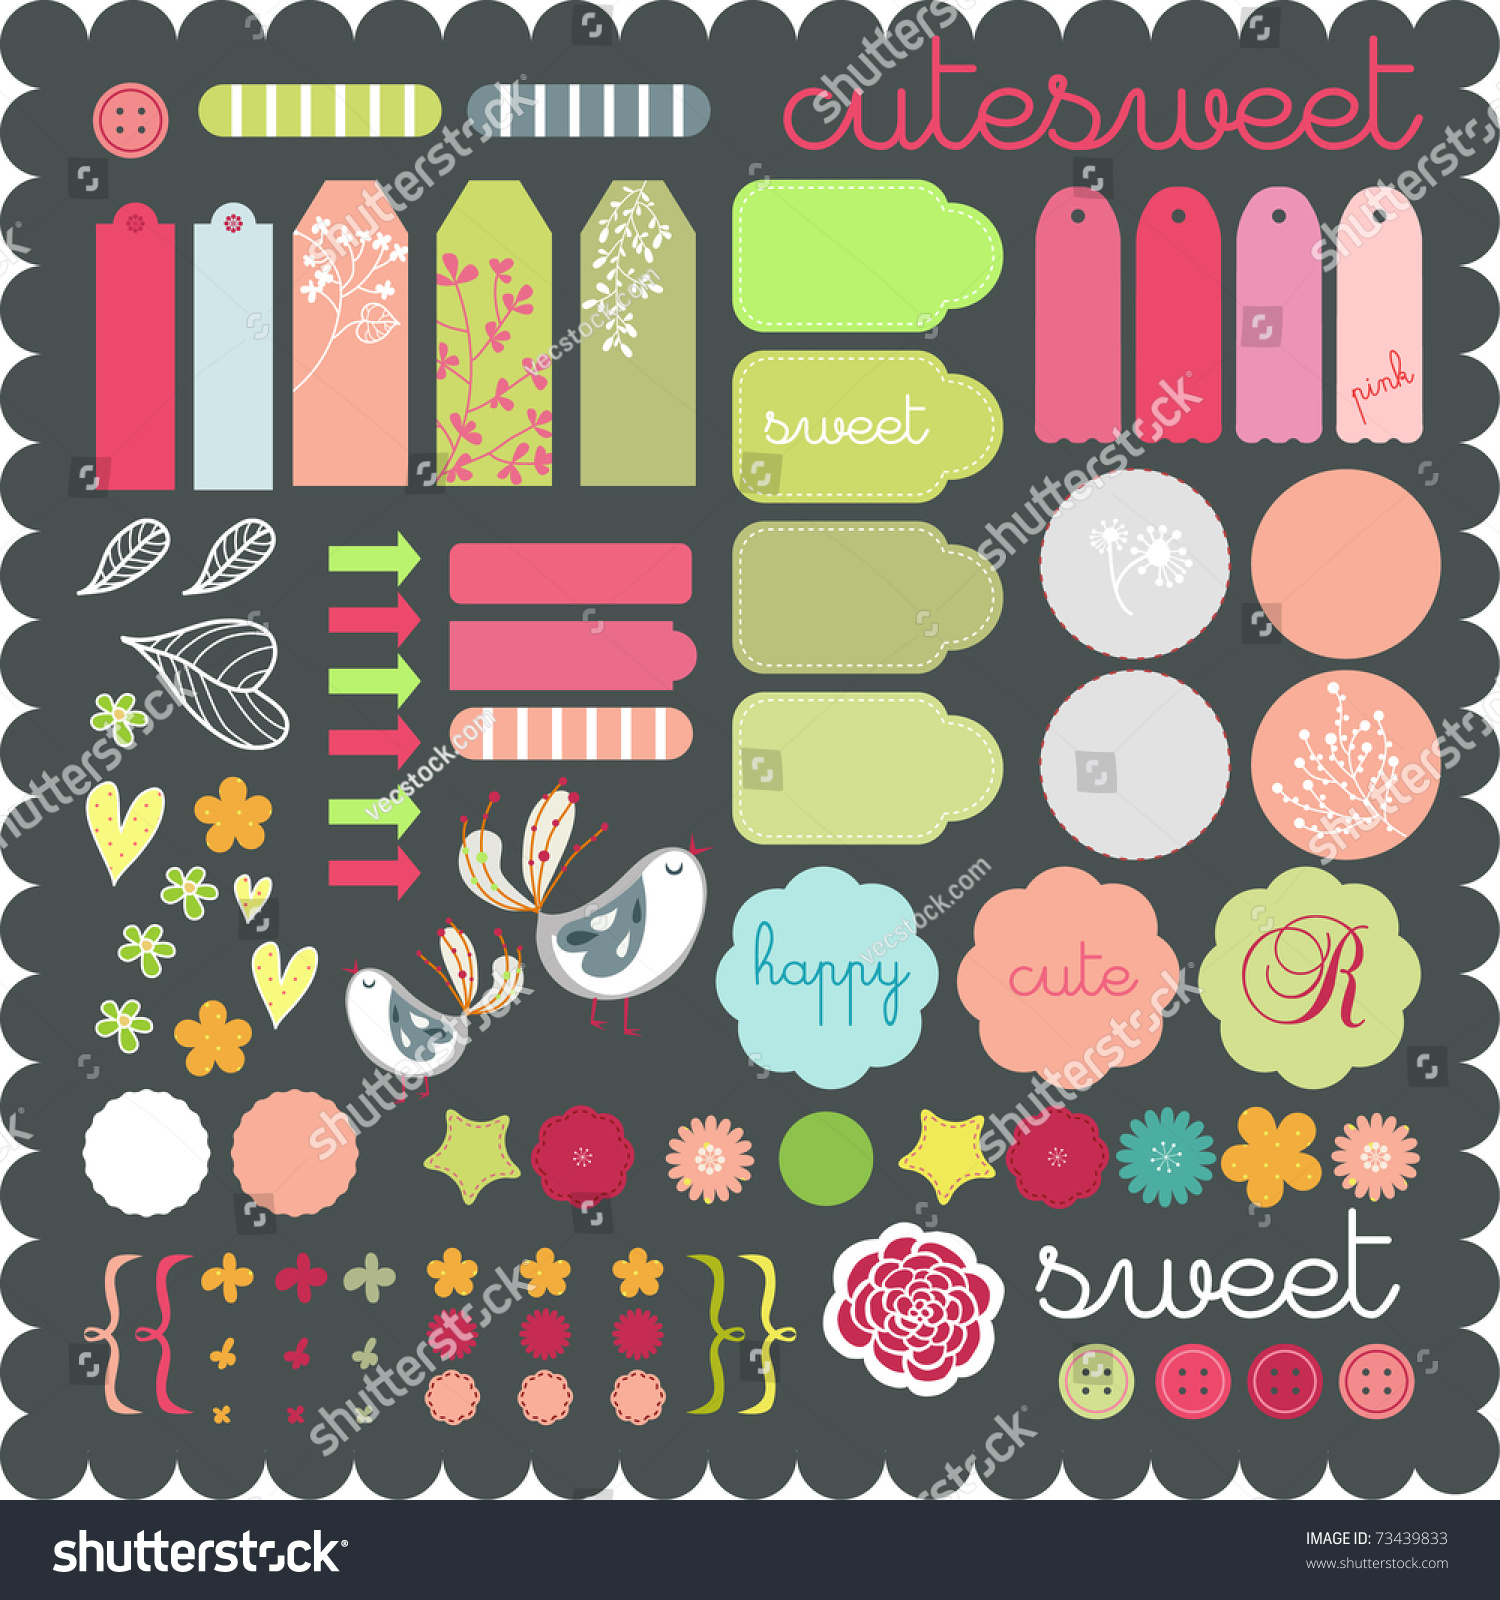 Scrapbook paper and stickers - Cute Scrapbook Graphic Elements Sticker Set Art To Download